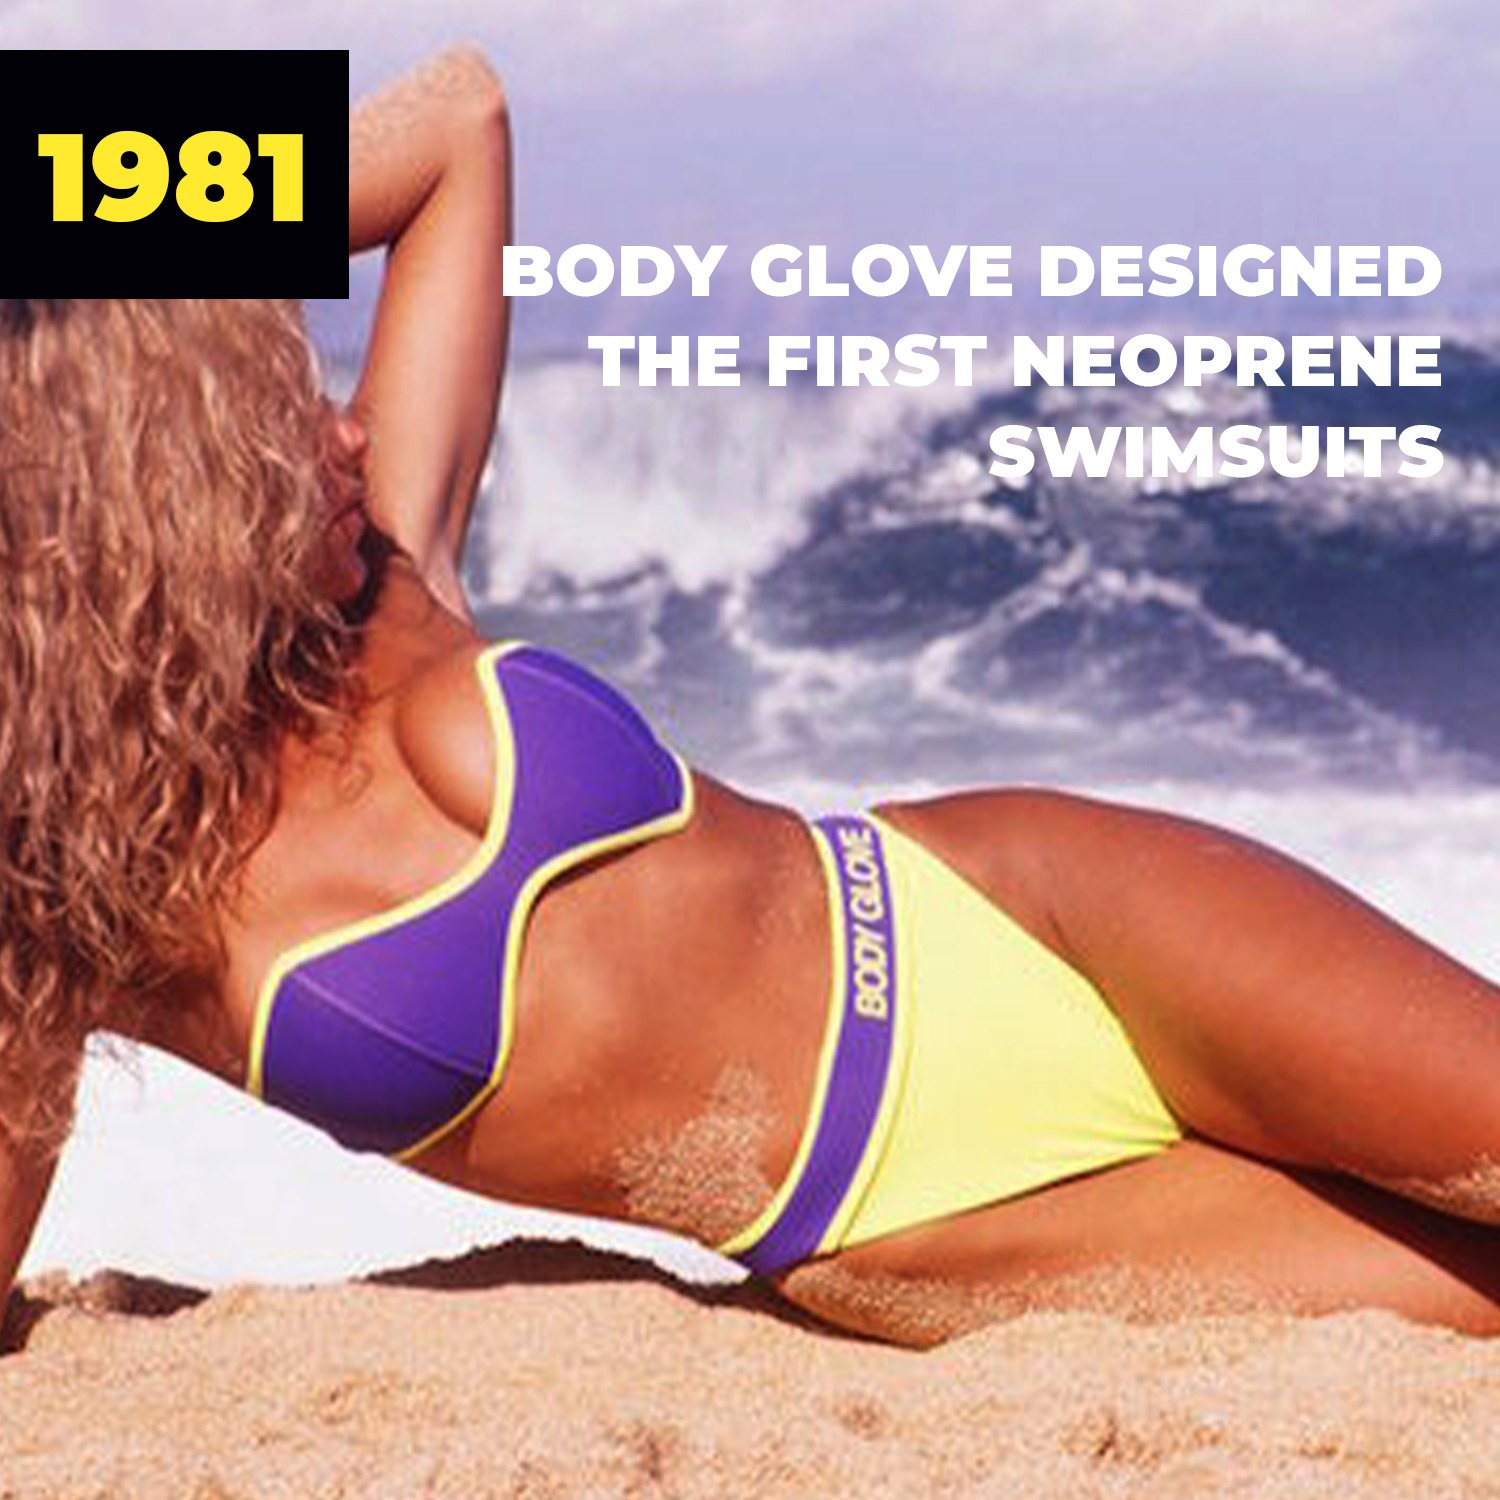 1981 | Body Glove Designed the First Neoprene Swimsuits